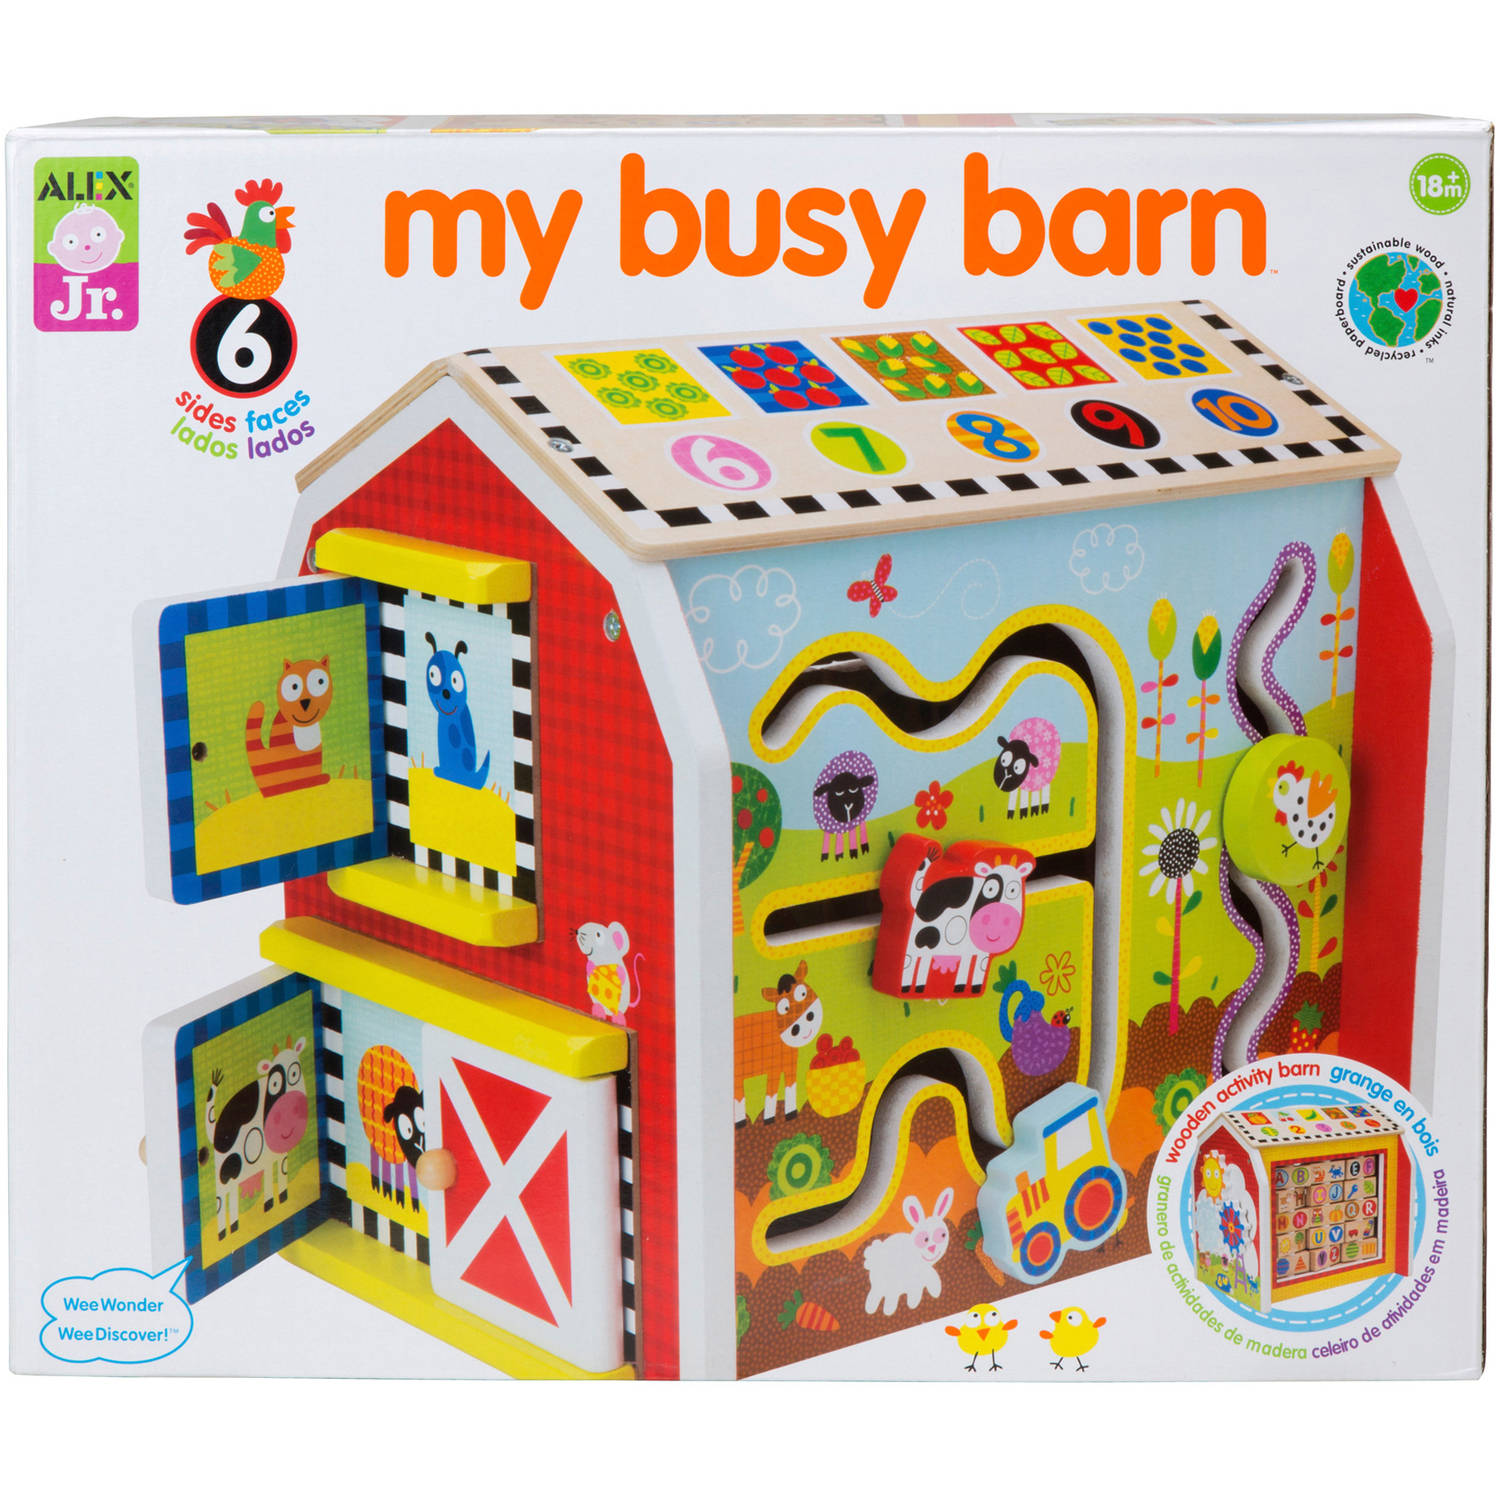 ALEX 1998 My Busy Barn Learning Toy